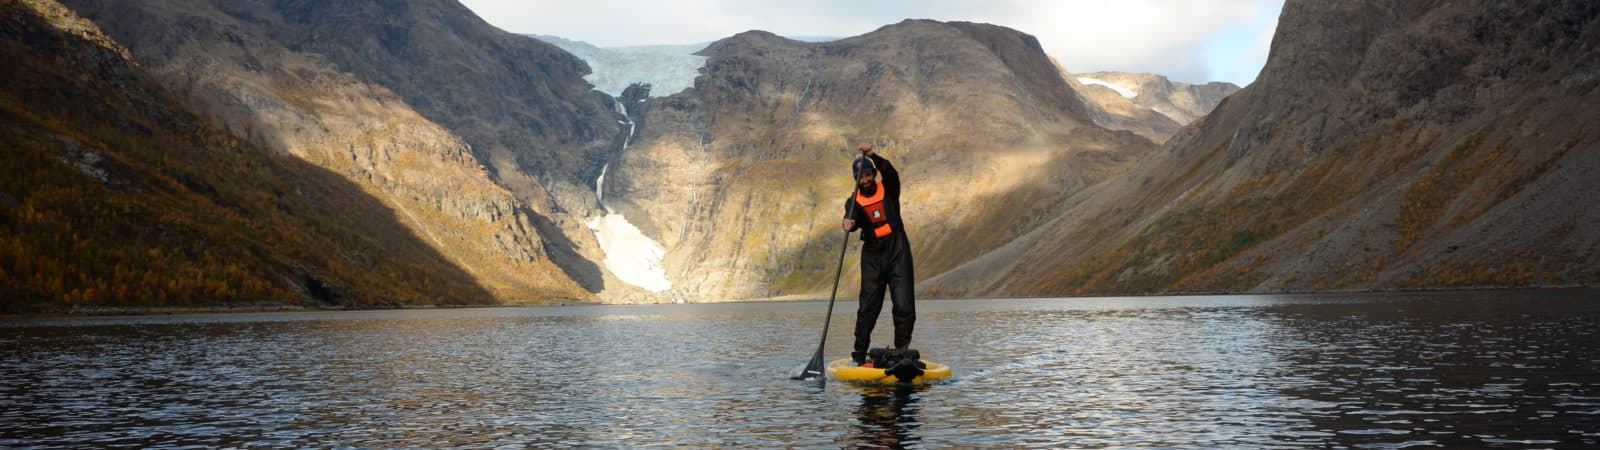 Outdoor activities in the fjords of Finnmark